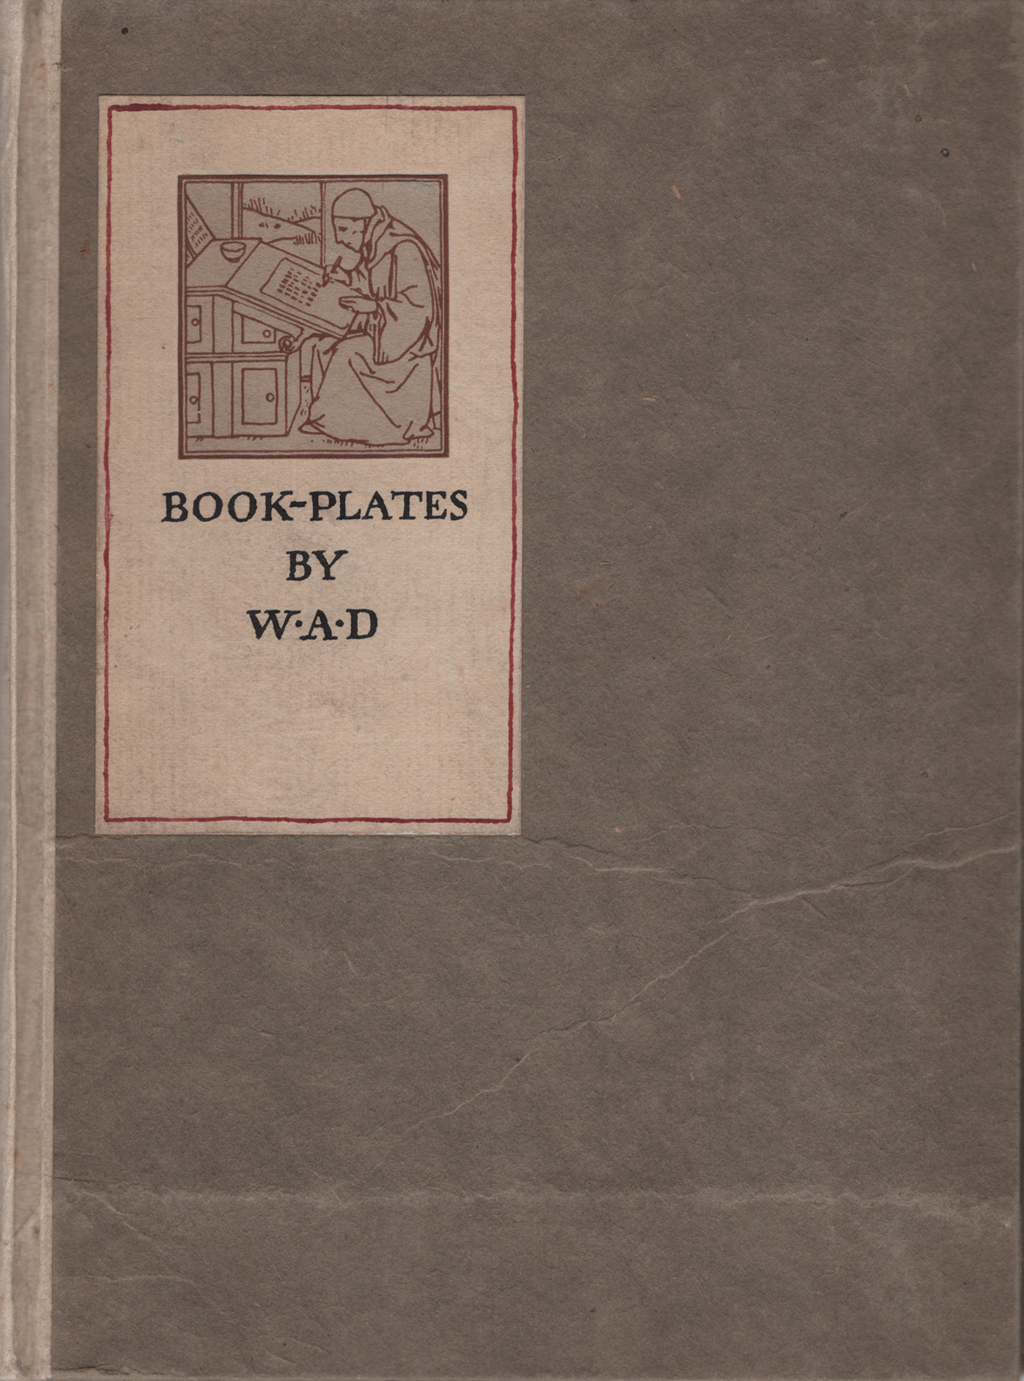 Cover of Book-Plates by W.A.D. (c.1905). Illustration by W.A. Dwiggins.